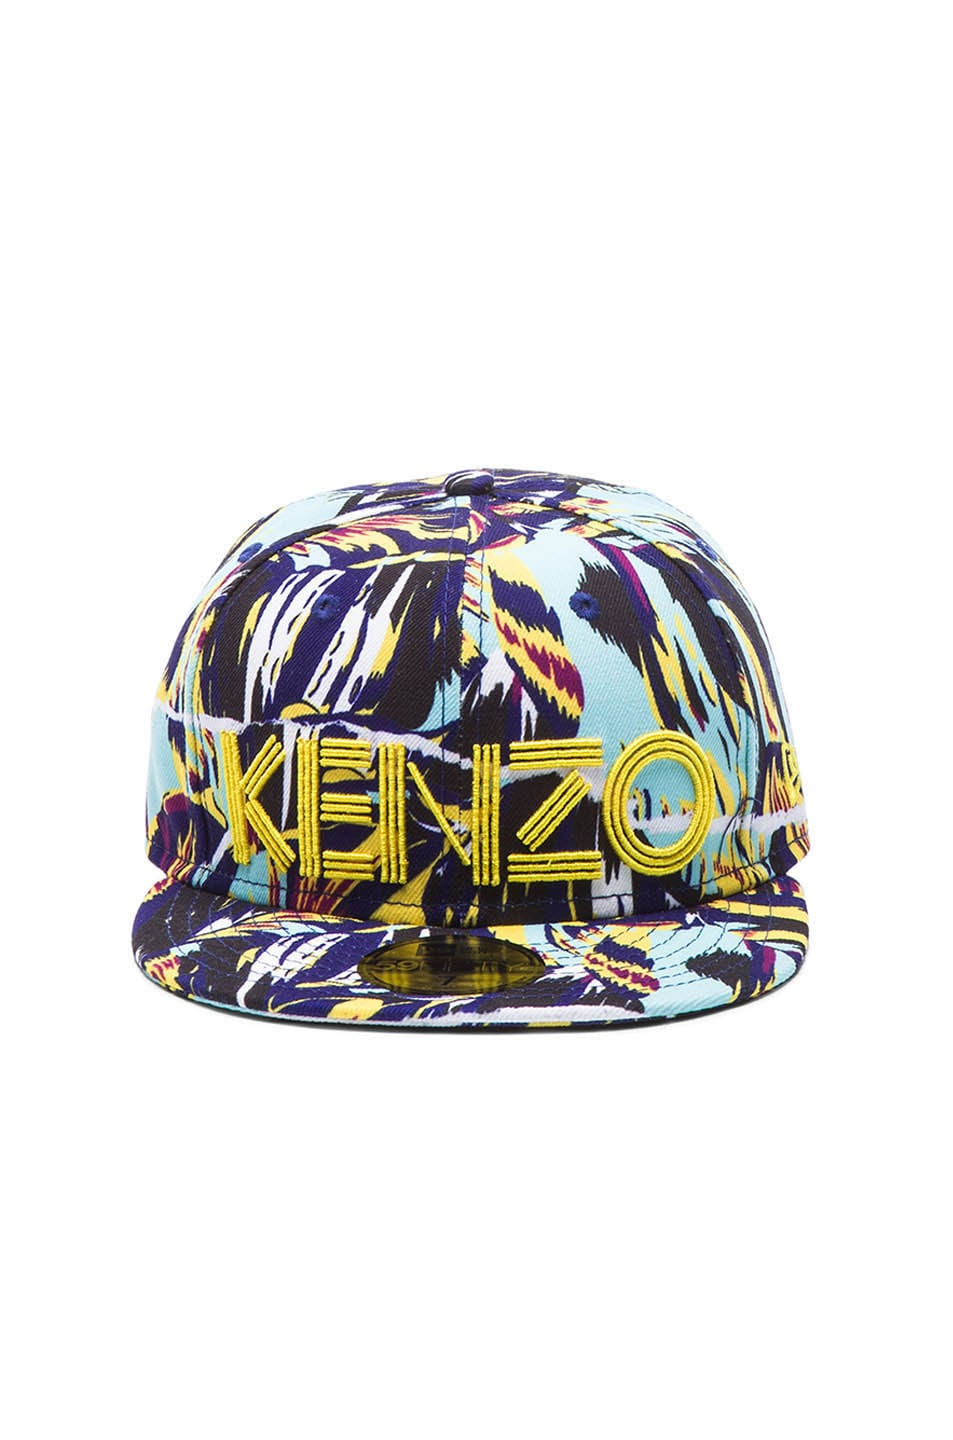 Image 1 of KENZO x New Era Torn Flowers Hat in Blue Multi